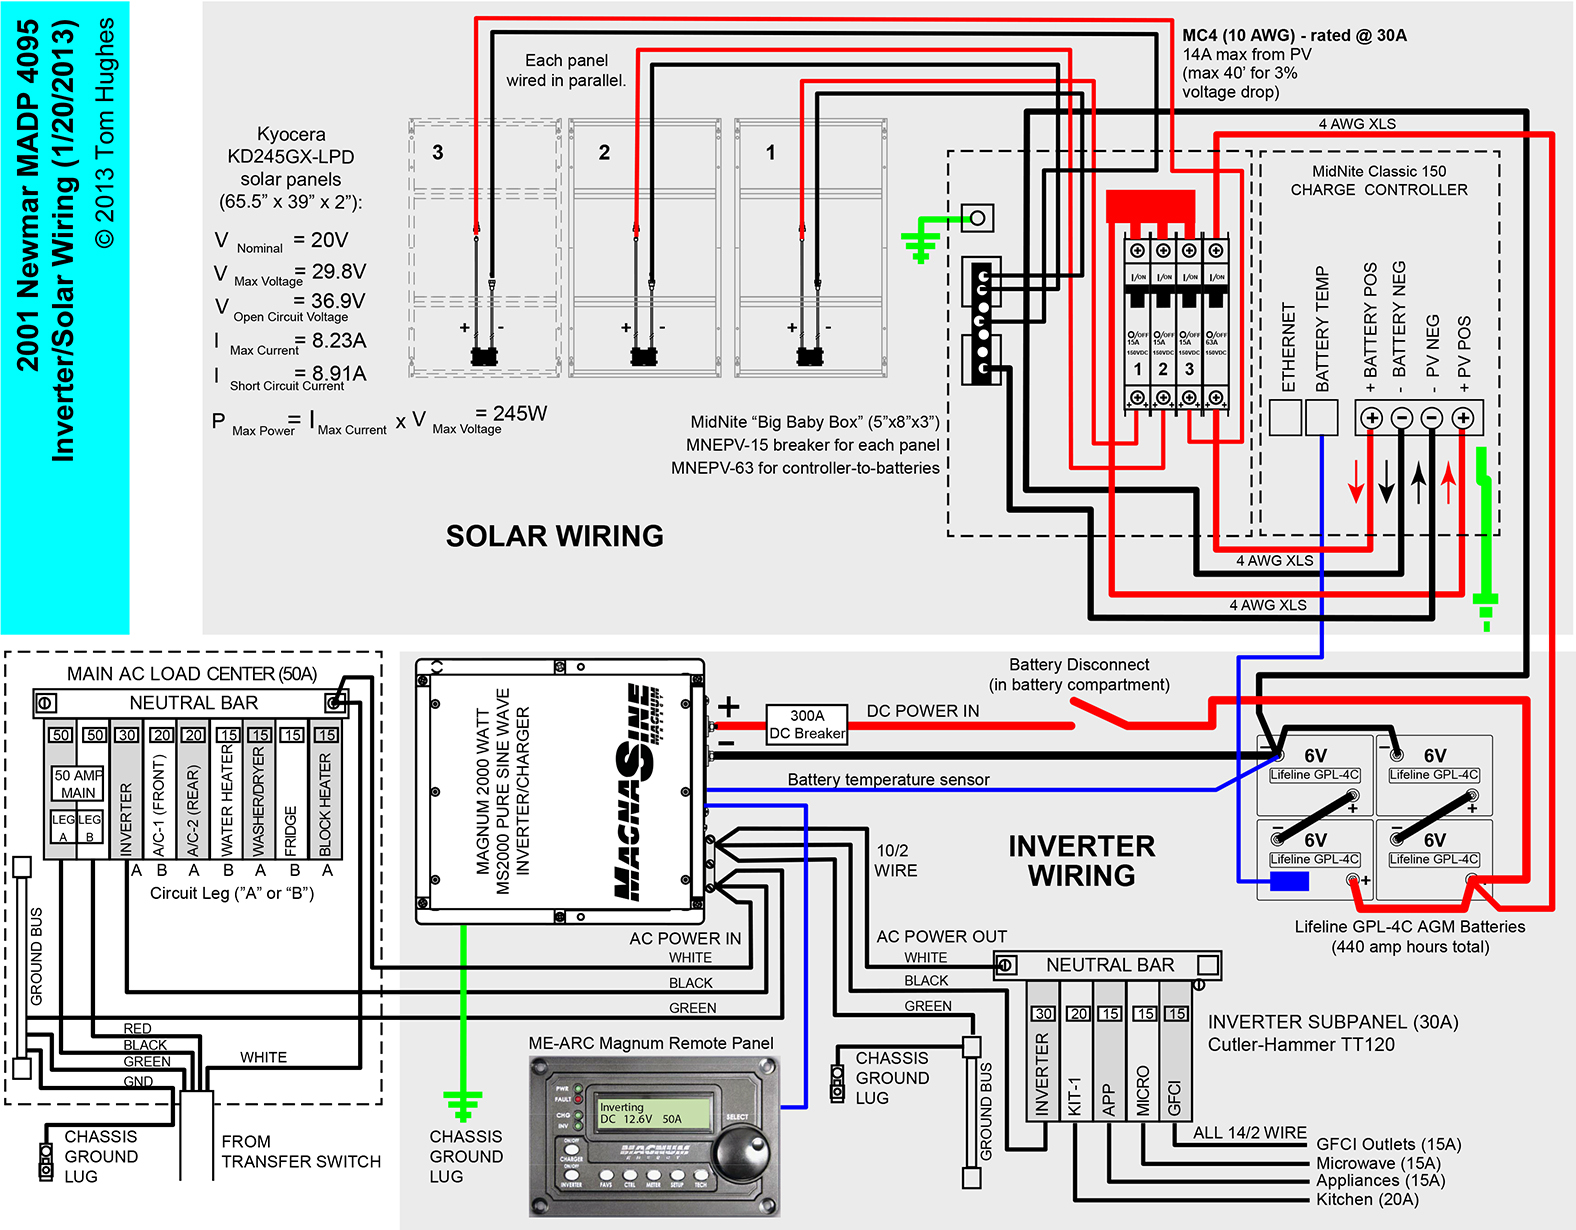 ms2000_newmar_inverter_wiring_01_20_2013 rv inverter diagram rv inverter transfer switch \u2022 wiring diagrams inverter wiring diagram at aneh.co